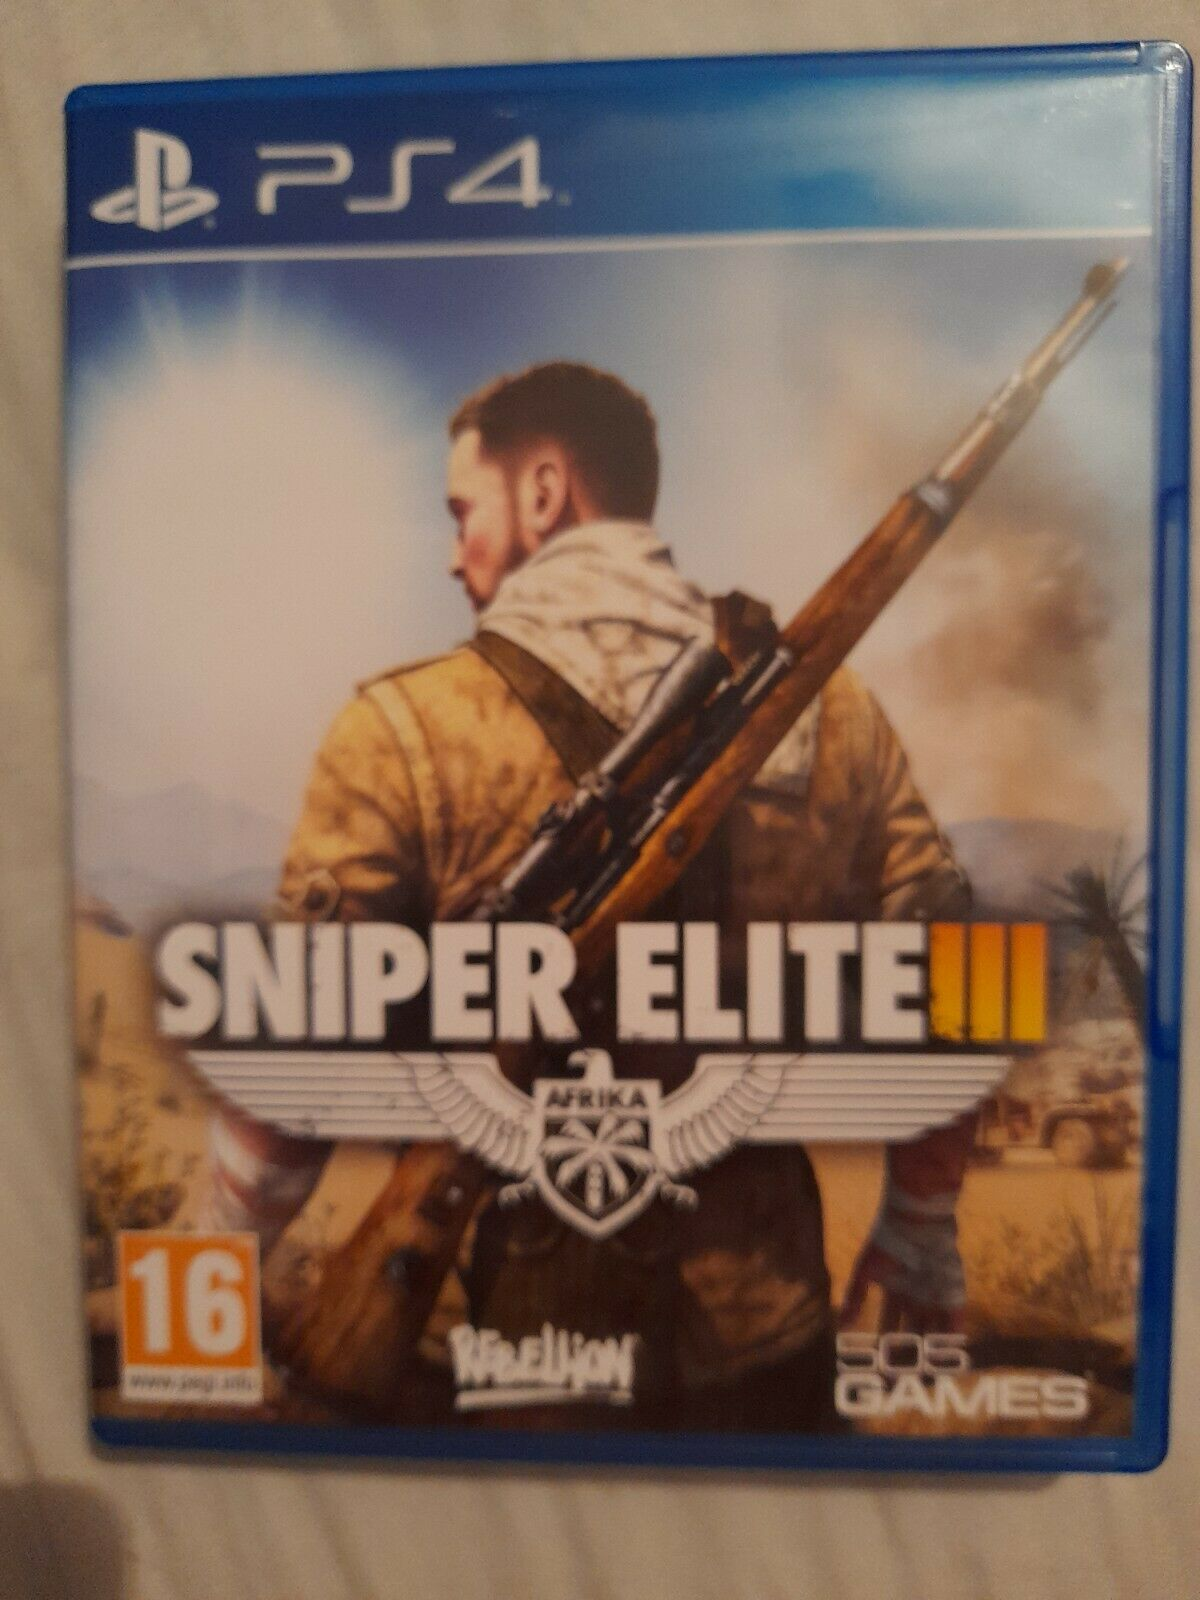 Sniper Elite III 3 PS4 Playstation 4 game. Excellent condition.